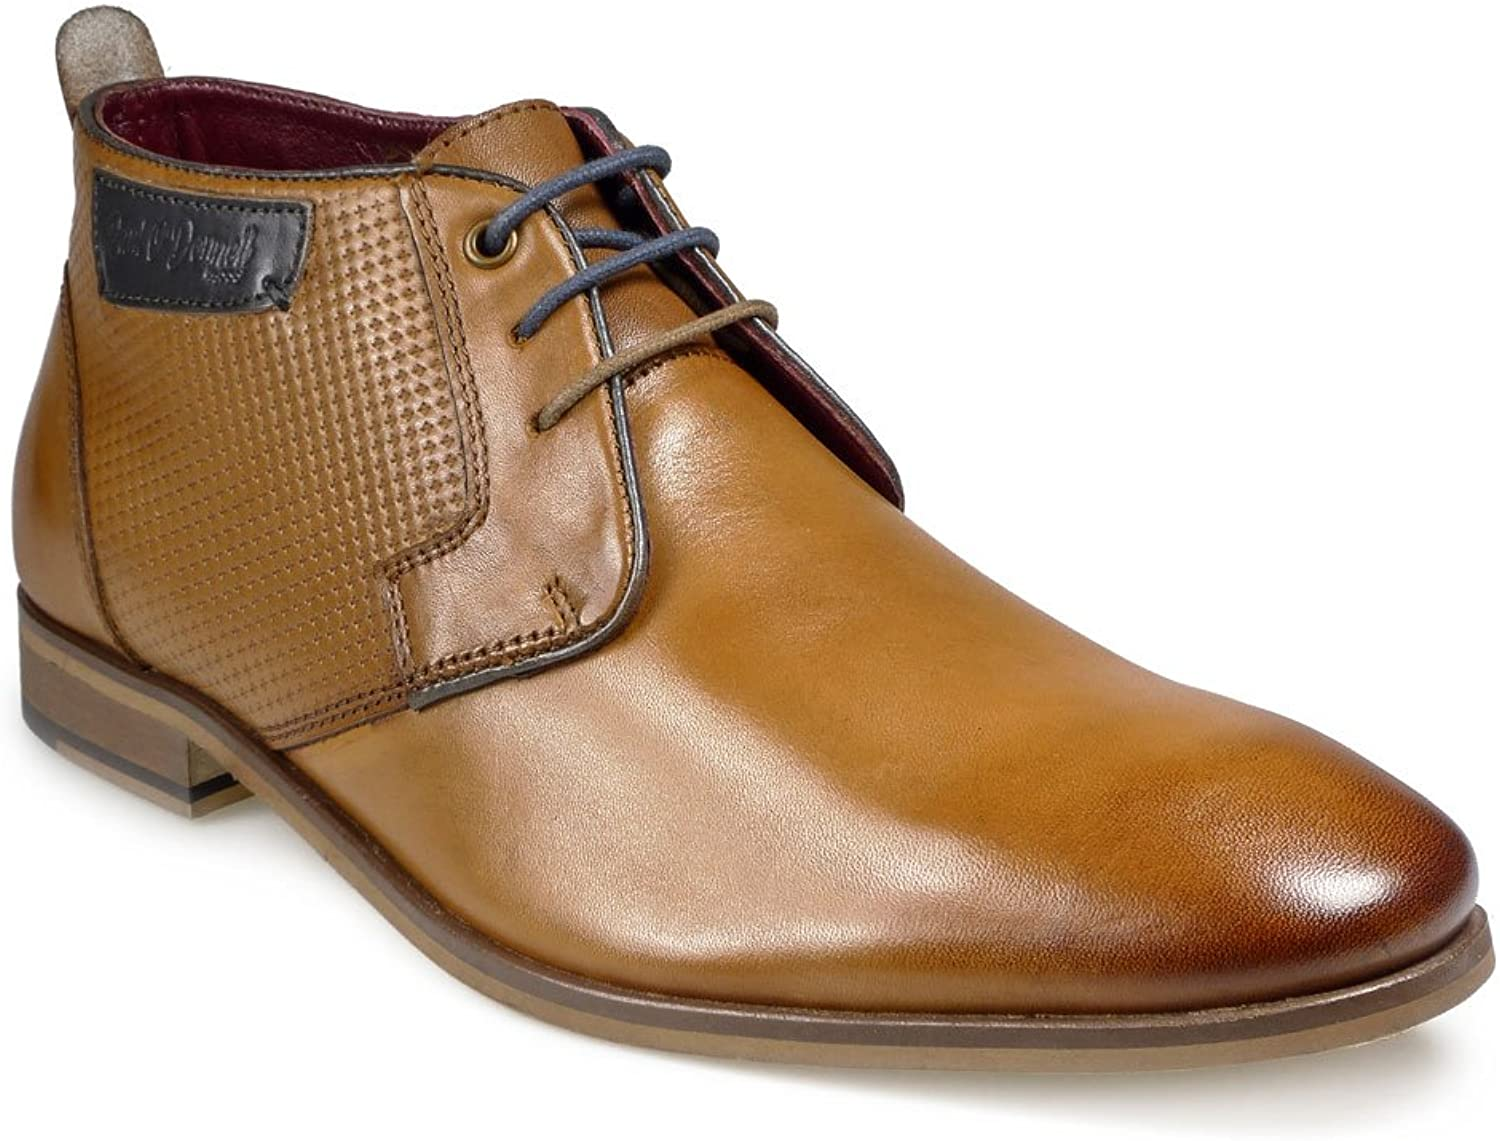 Paul O' Donnell Mens Lace up Low Rise Formal Boot - Miami Cognac